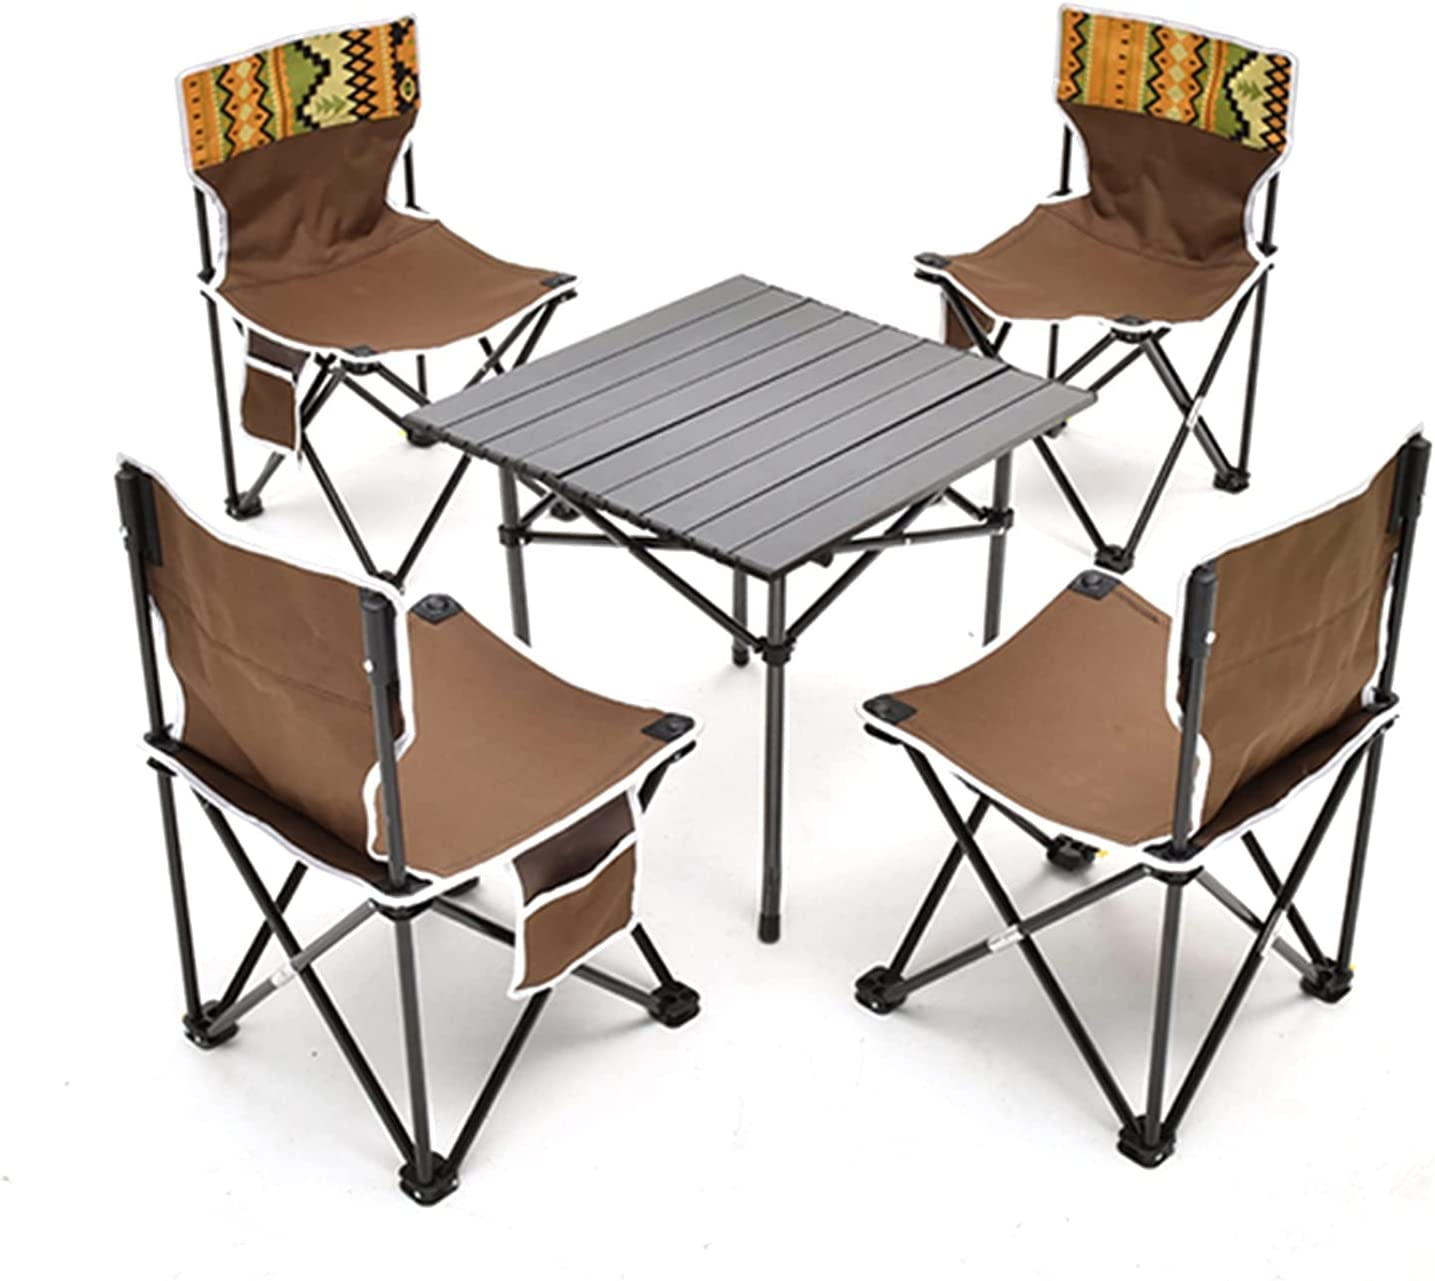 Camping Dedication Table Chairs Folding and Outdoor Tabl Super sale Picnic Lightweight